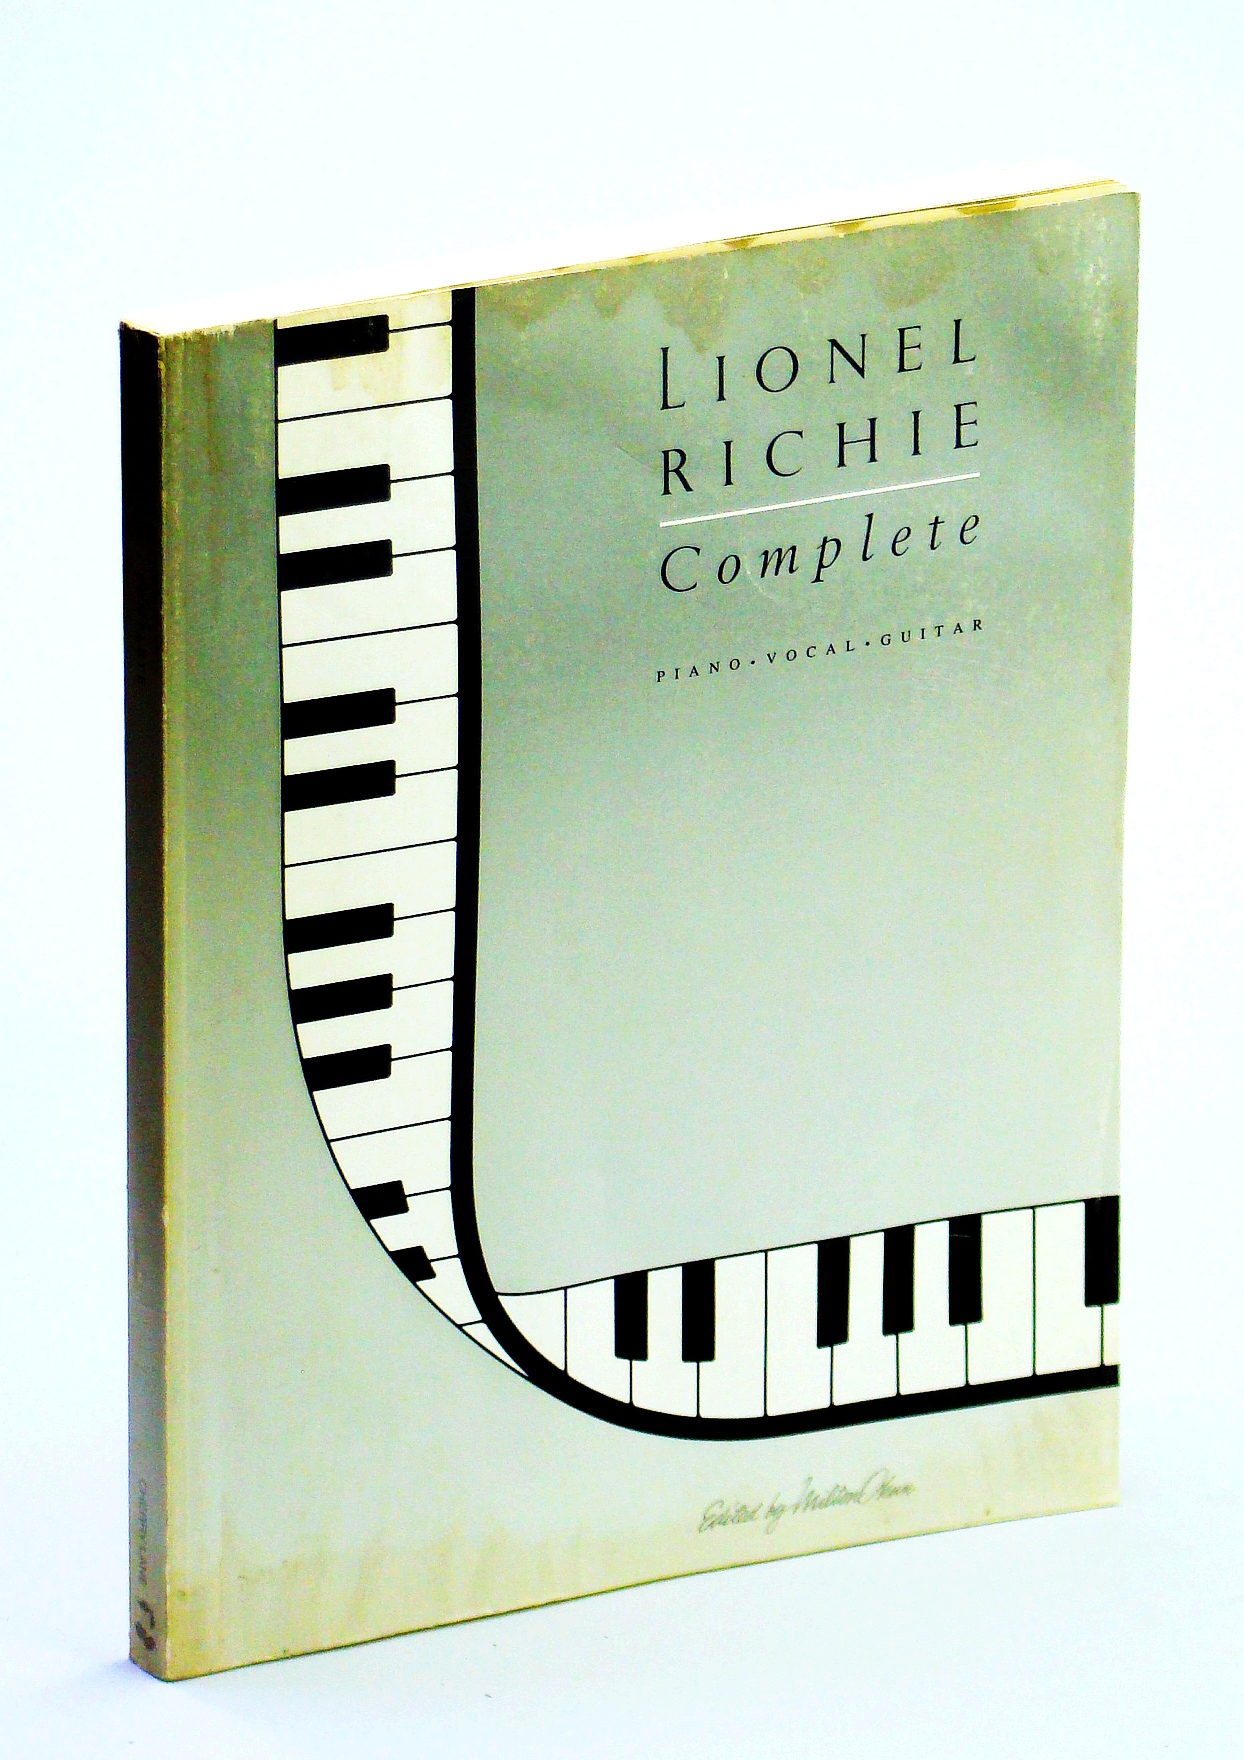 Image for Lionel Ritchie: Complete: Piano/Vocal/Guitar by Richie (31-Dec-2003) Paperback